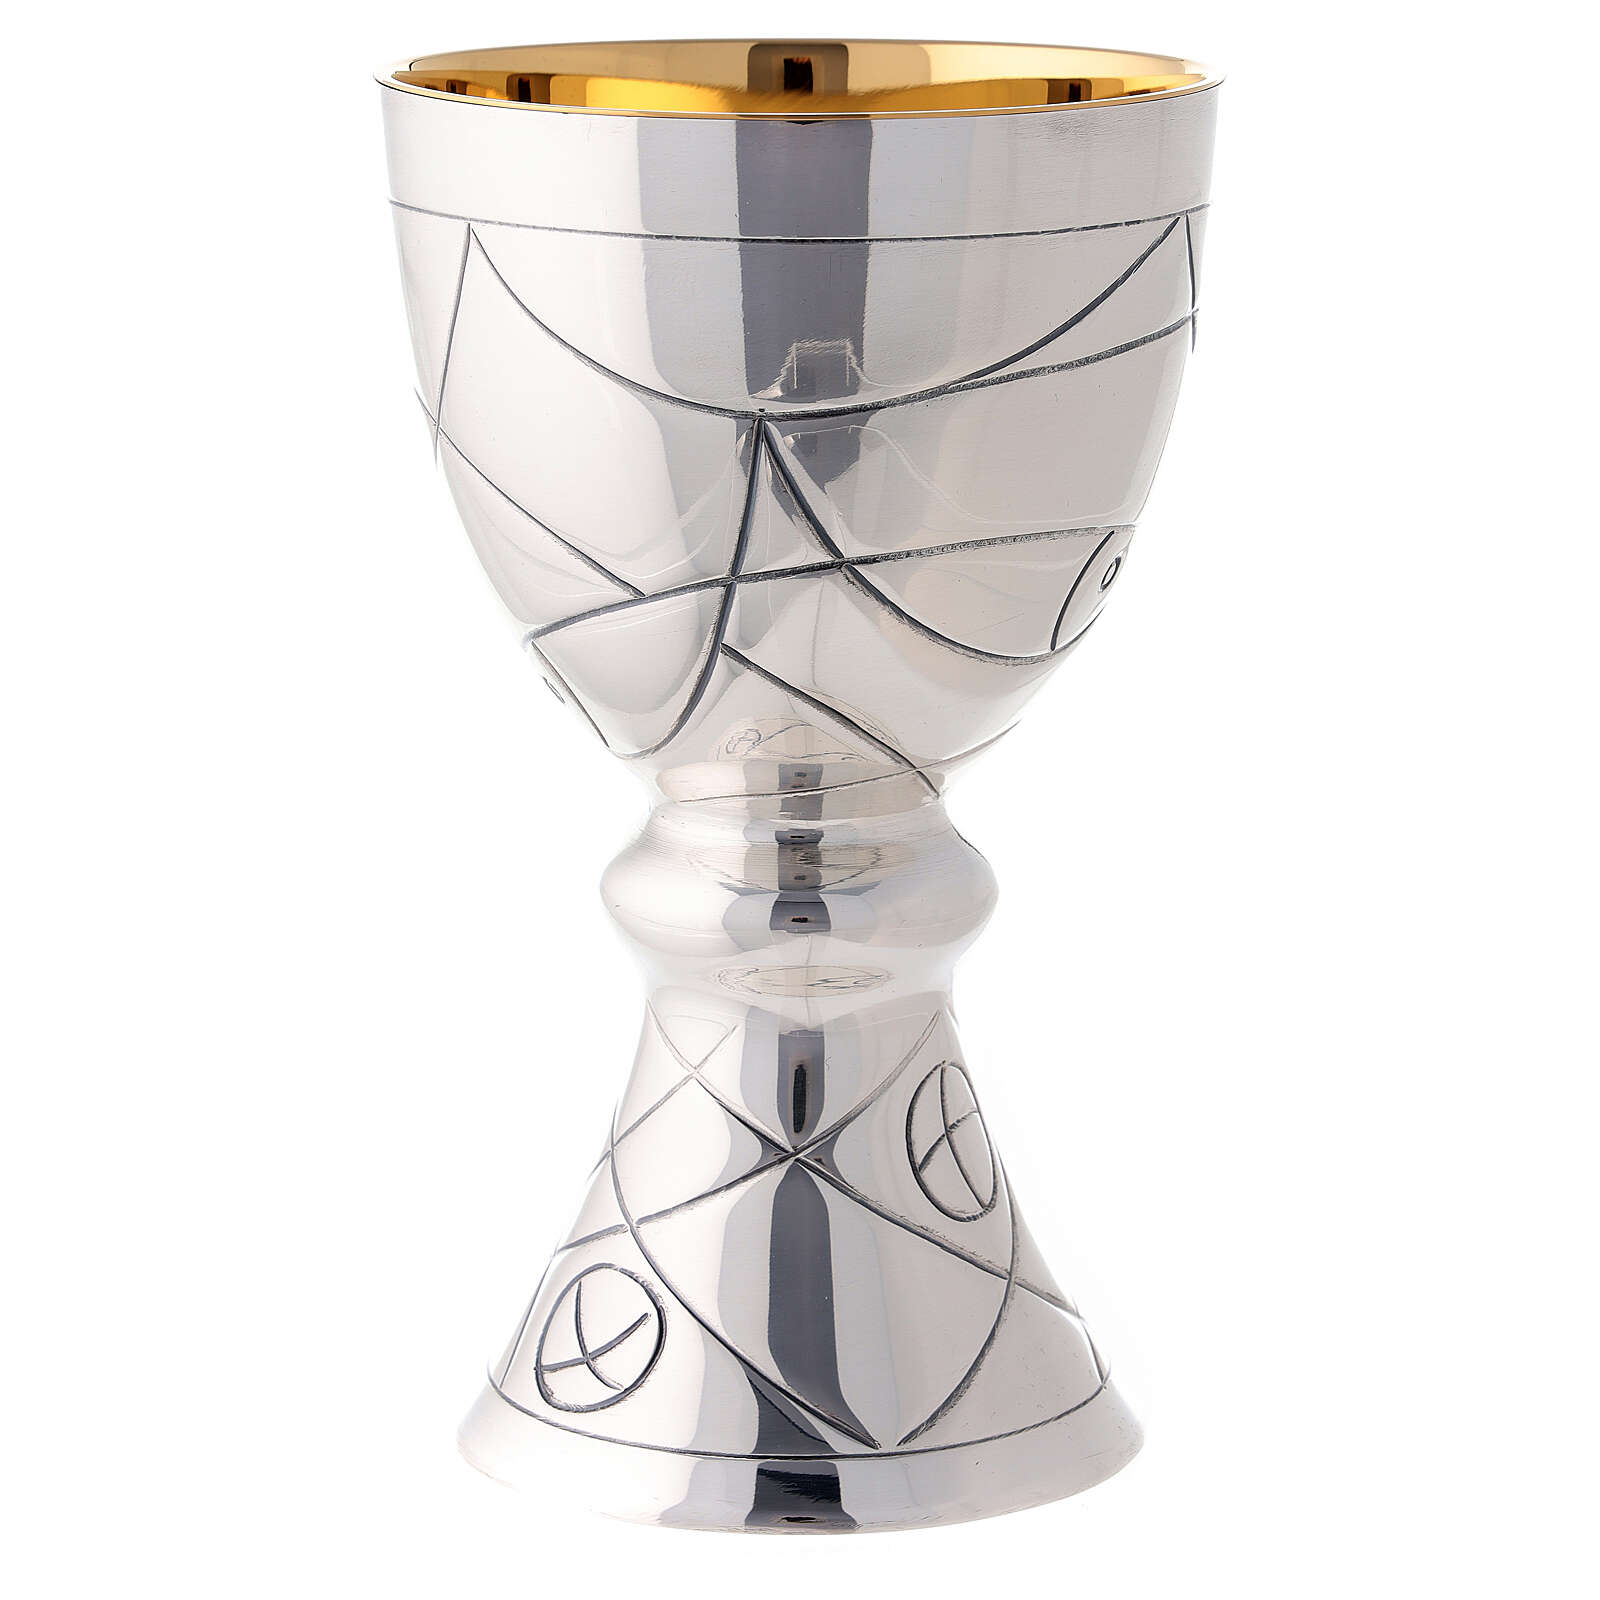 Chalice and paten in contemporary style Molina with bread fish and nets illustration with cup in 925 sterling silver 4